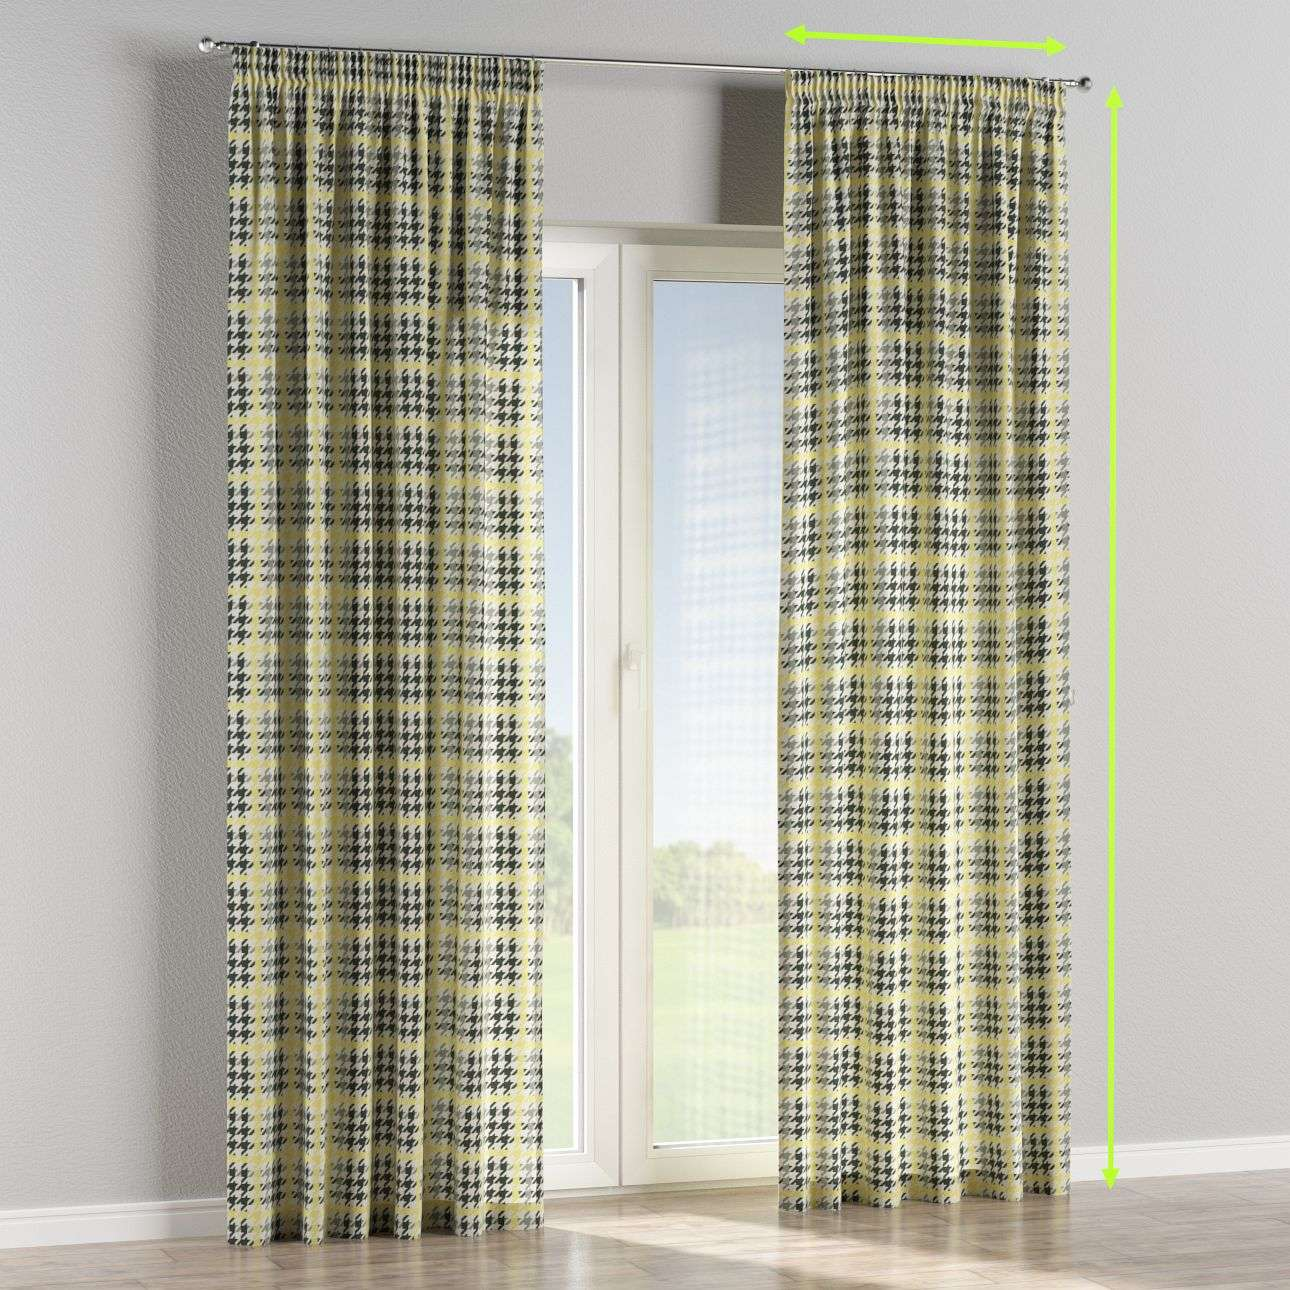 Pencil pleat lined curtains in collection Brooklyn, fabric: 137-79